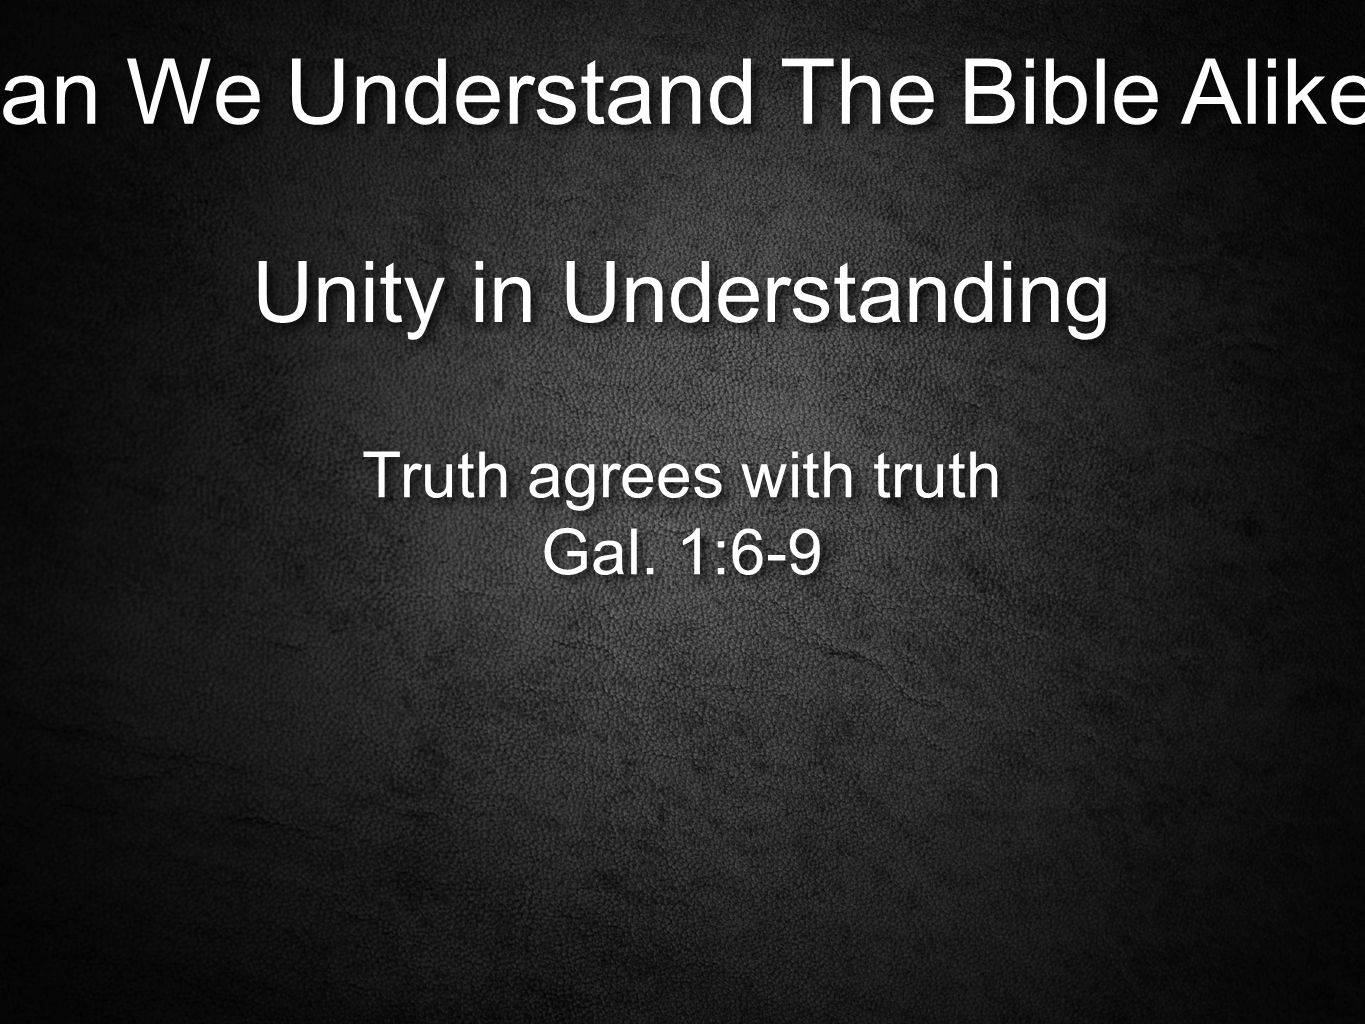 Can We Understand The Bible Alike. Unity in Understanding Truth agrees with truth Gal.